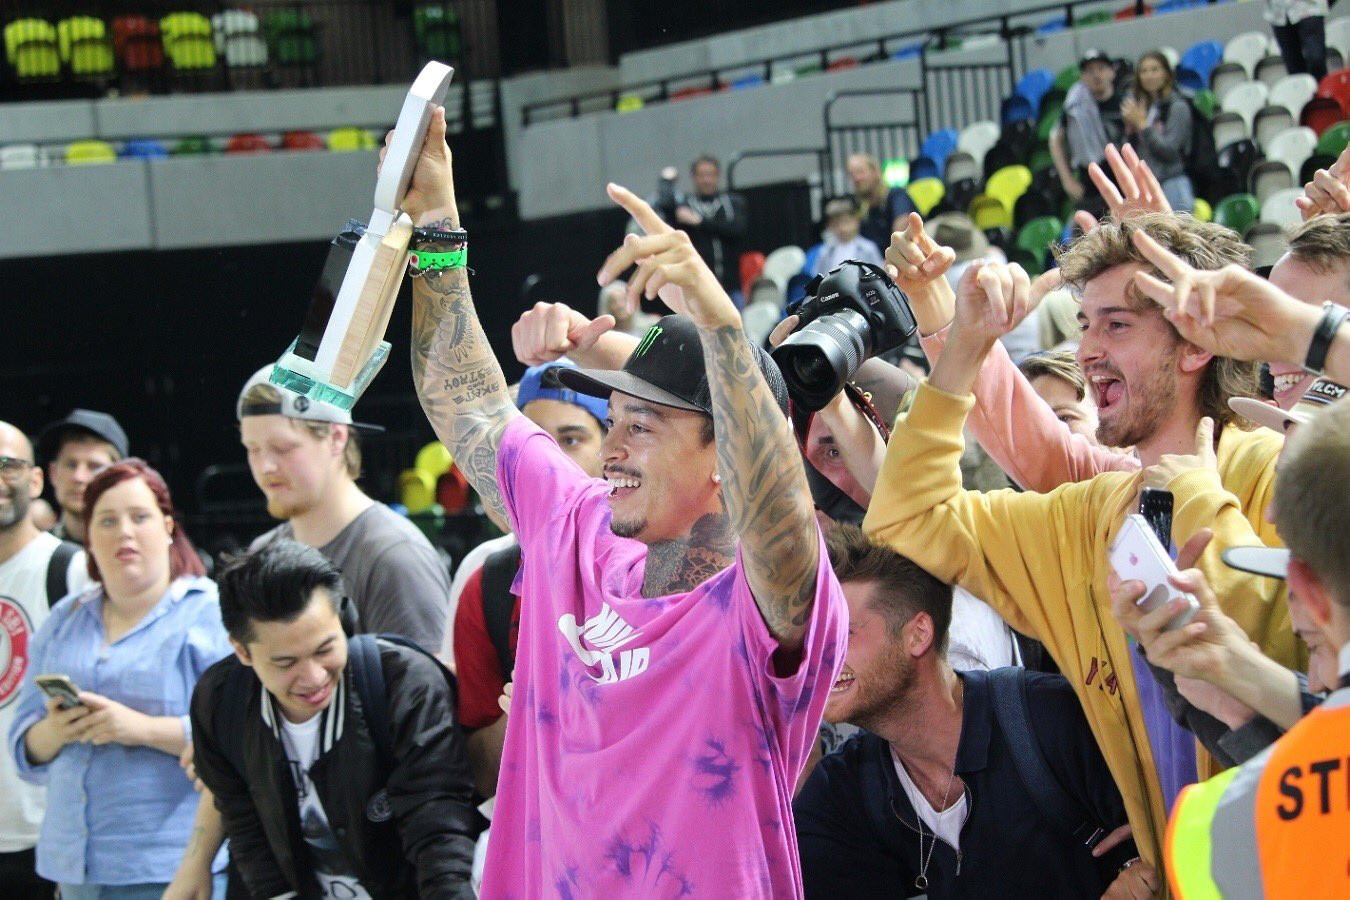 World champion Nyjah Huston produced a superb display to claim gold in the men's final ©Twitter